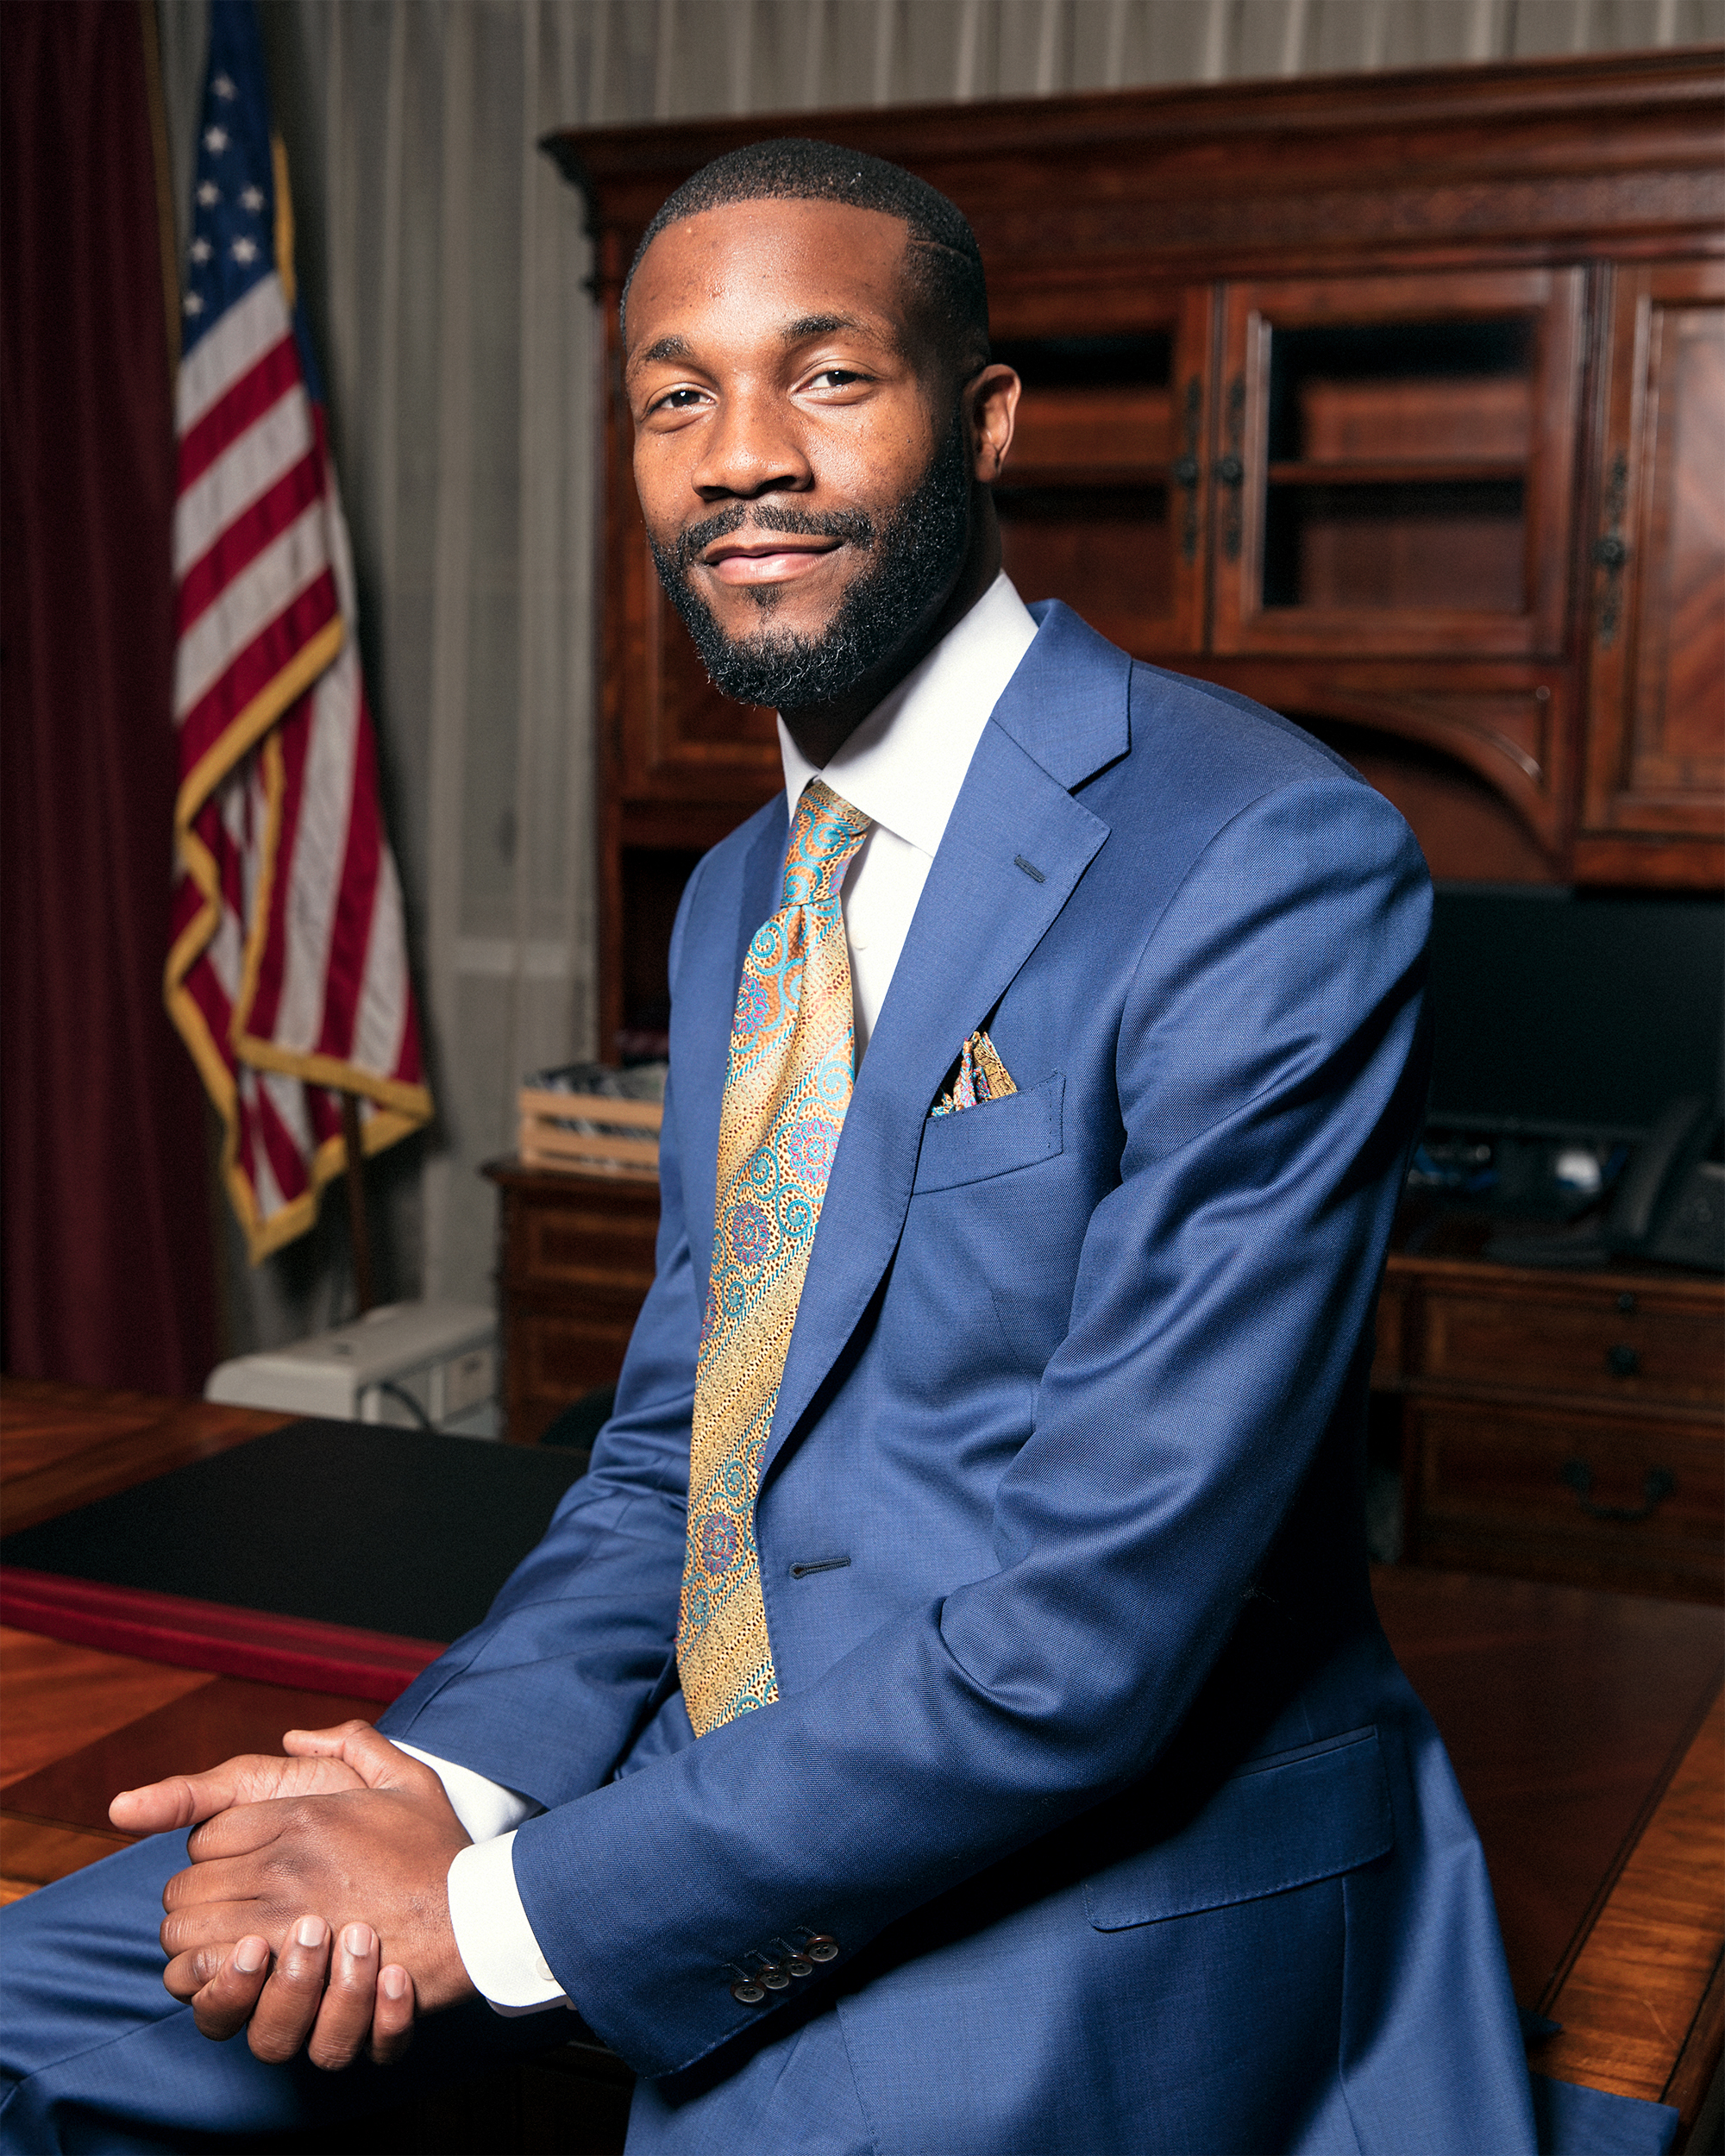 mayor_randall_woodfin_desk.jpg